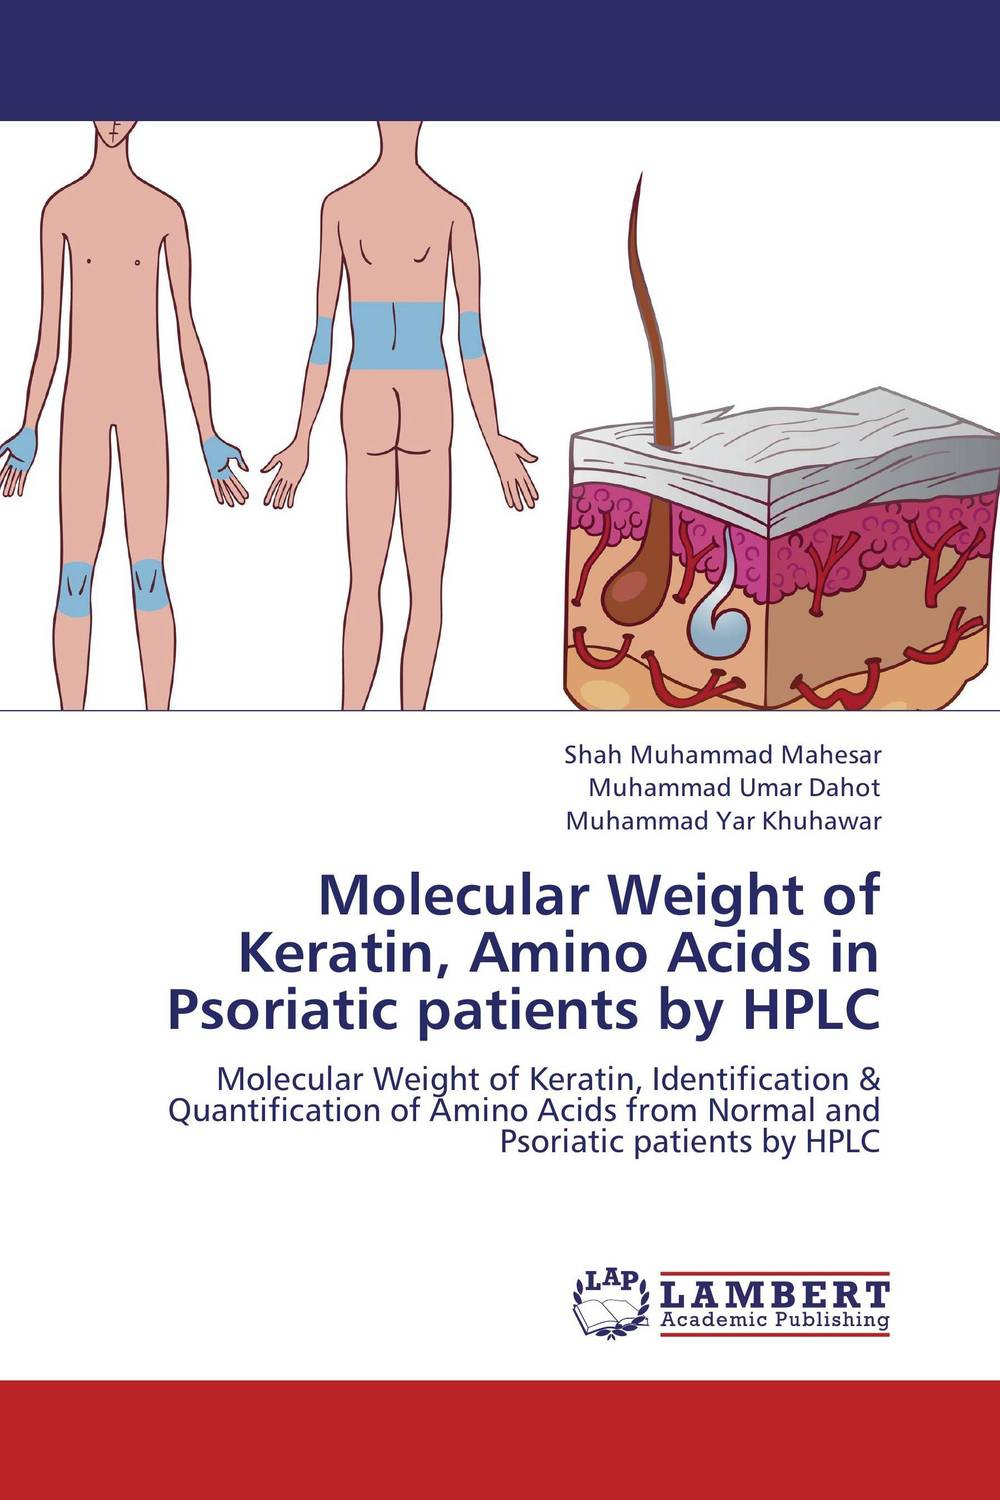 Molecular Weight of Keratin, Amino Acids in Psoriatic patients by HPLC